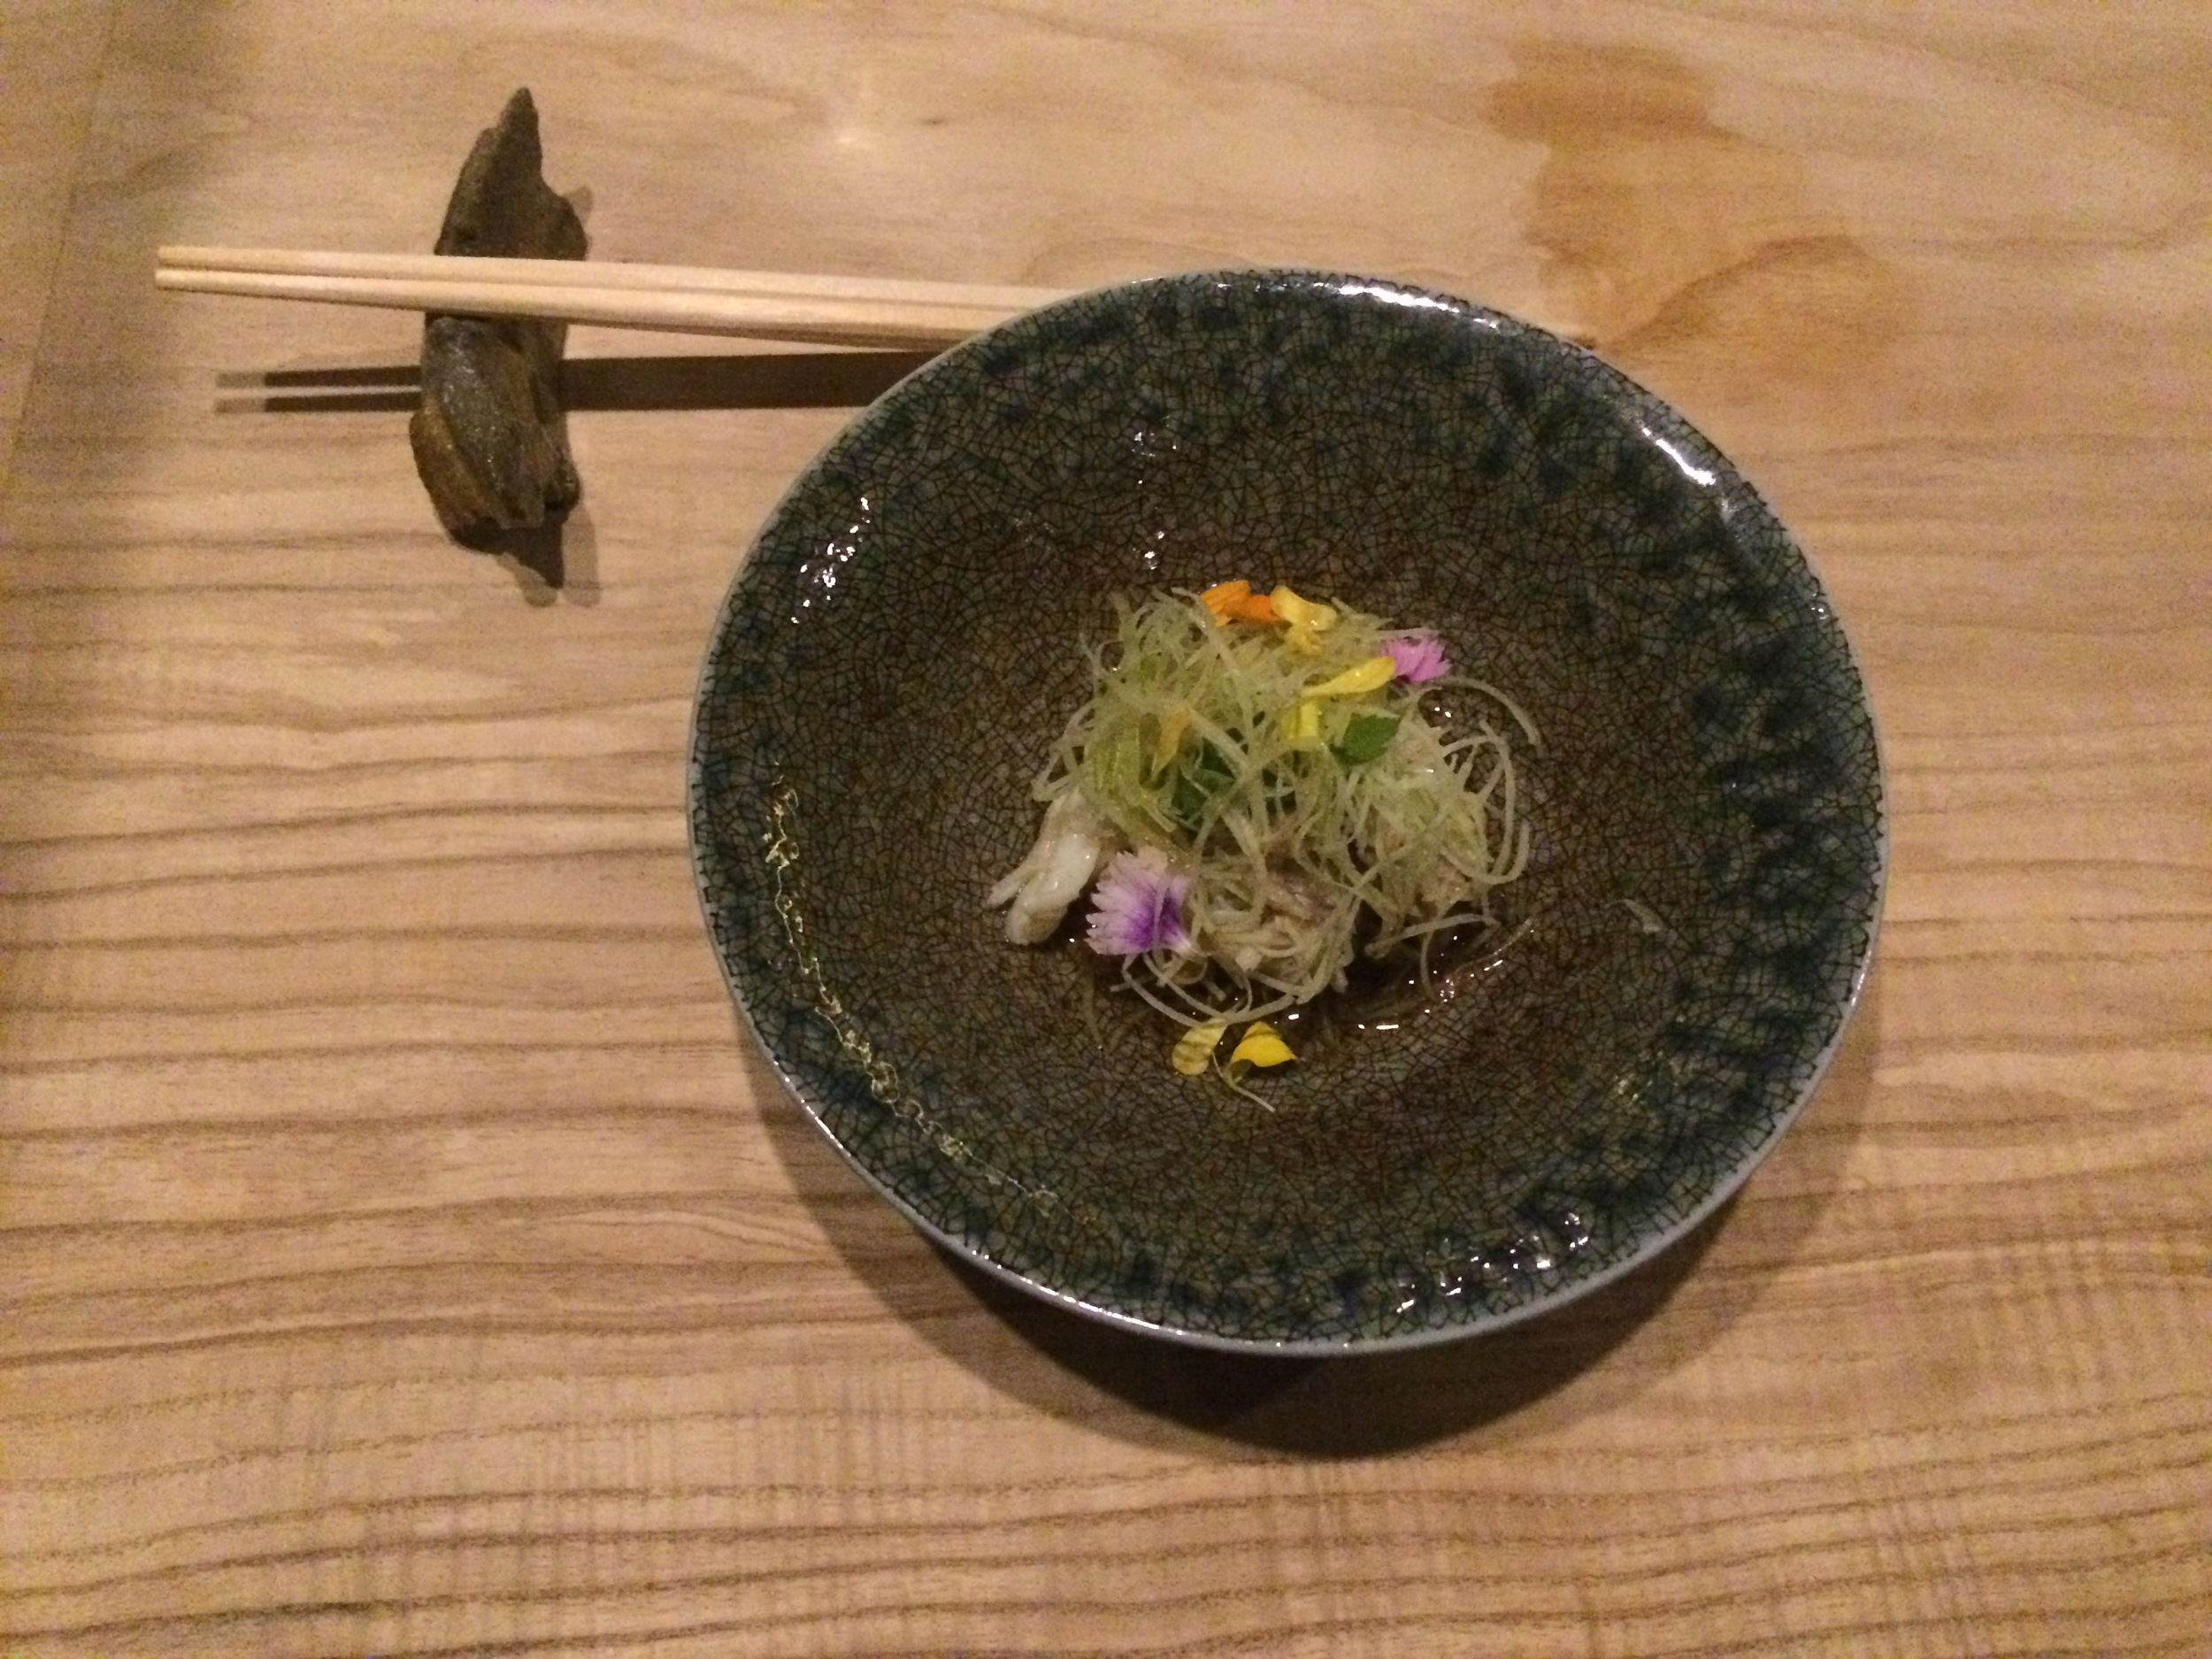 Dungeness crab and shredded cucumber serves as a bright and vinegary Sunomono salad, with chrysanthemum lending a flowery touch.